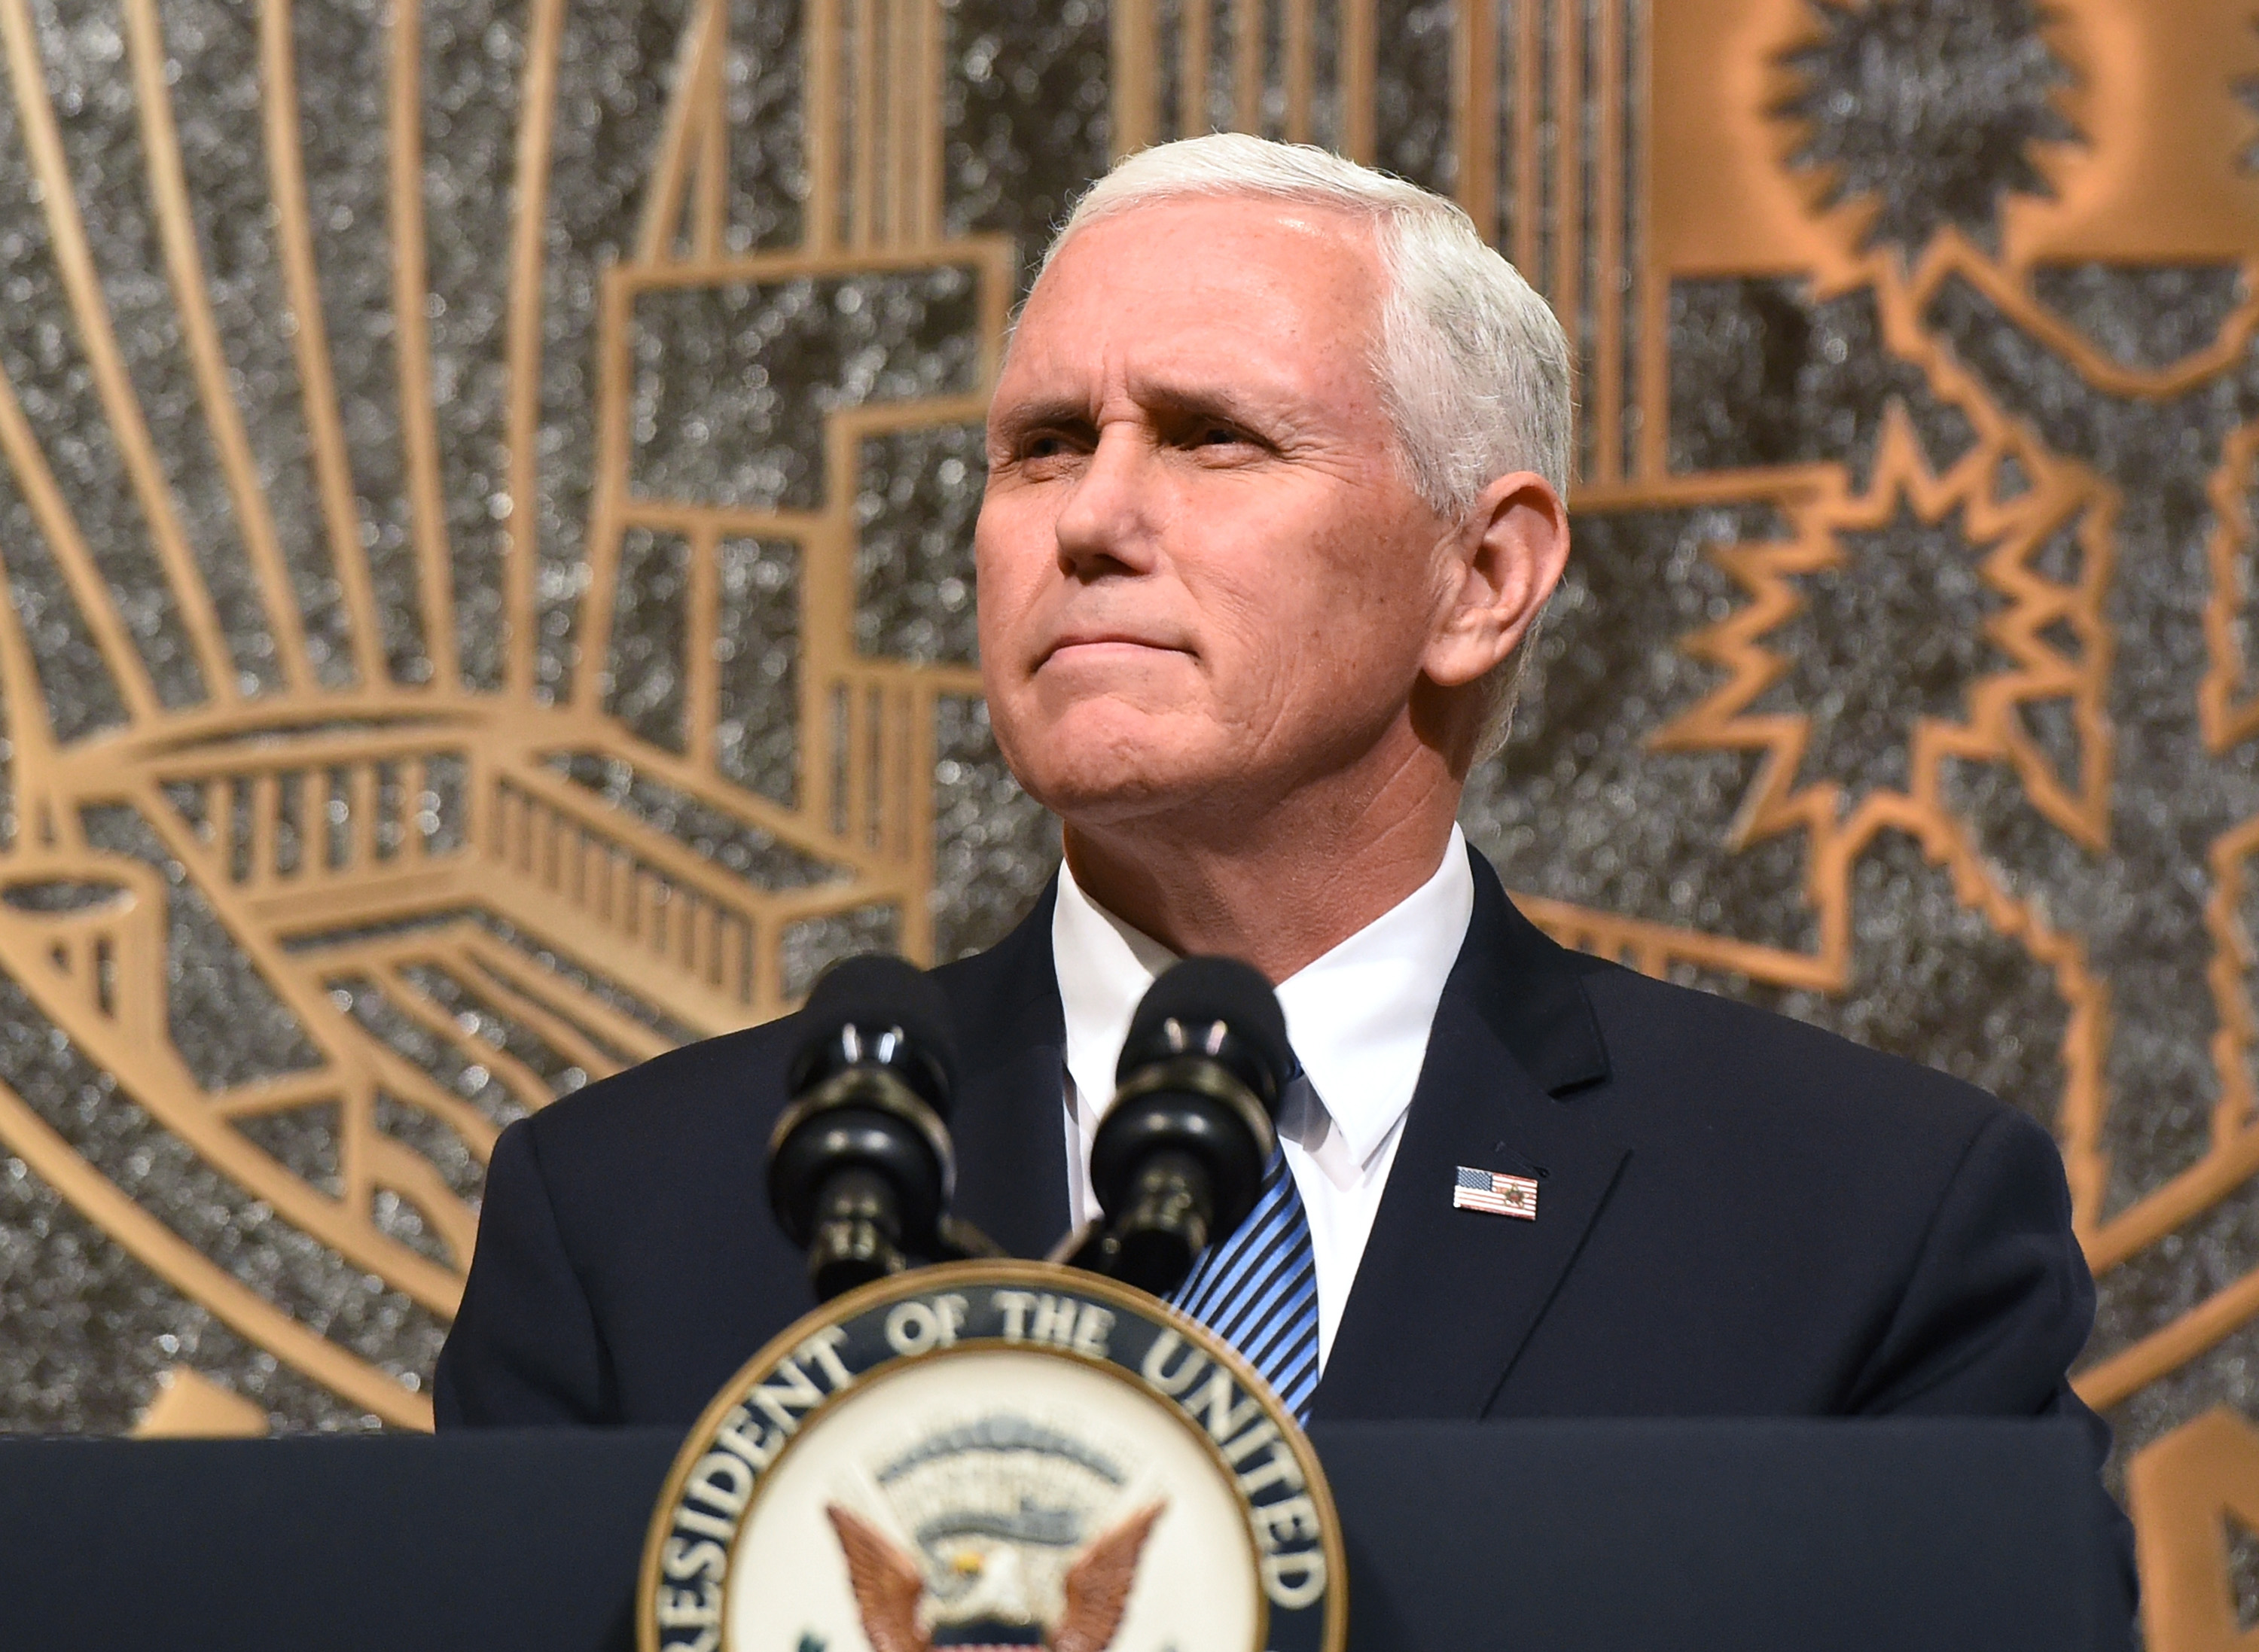 Vice President Mike Pence leaves NFL game after protests